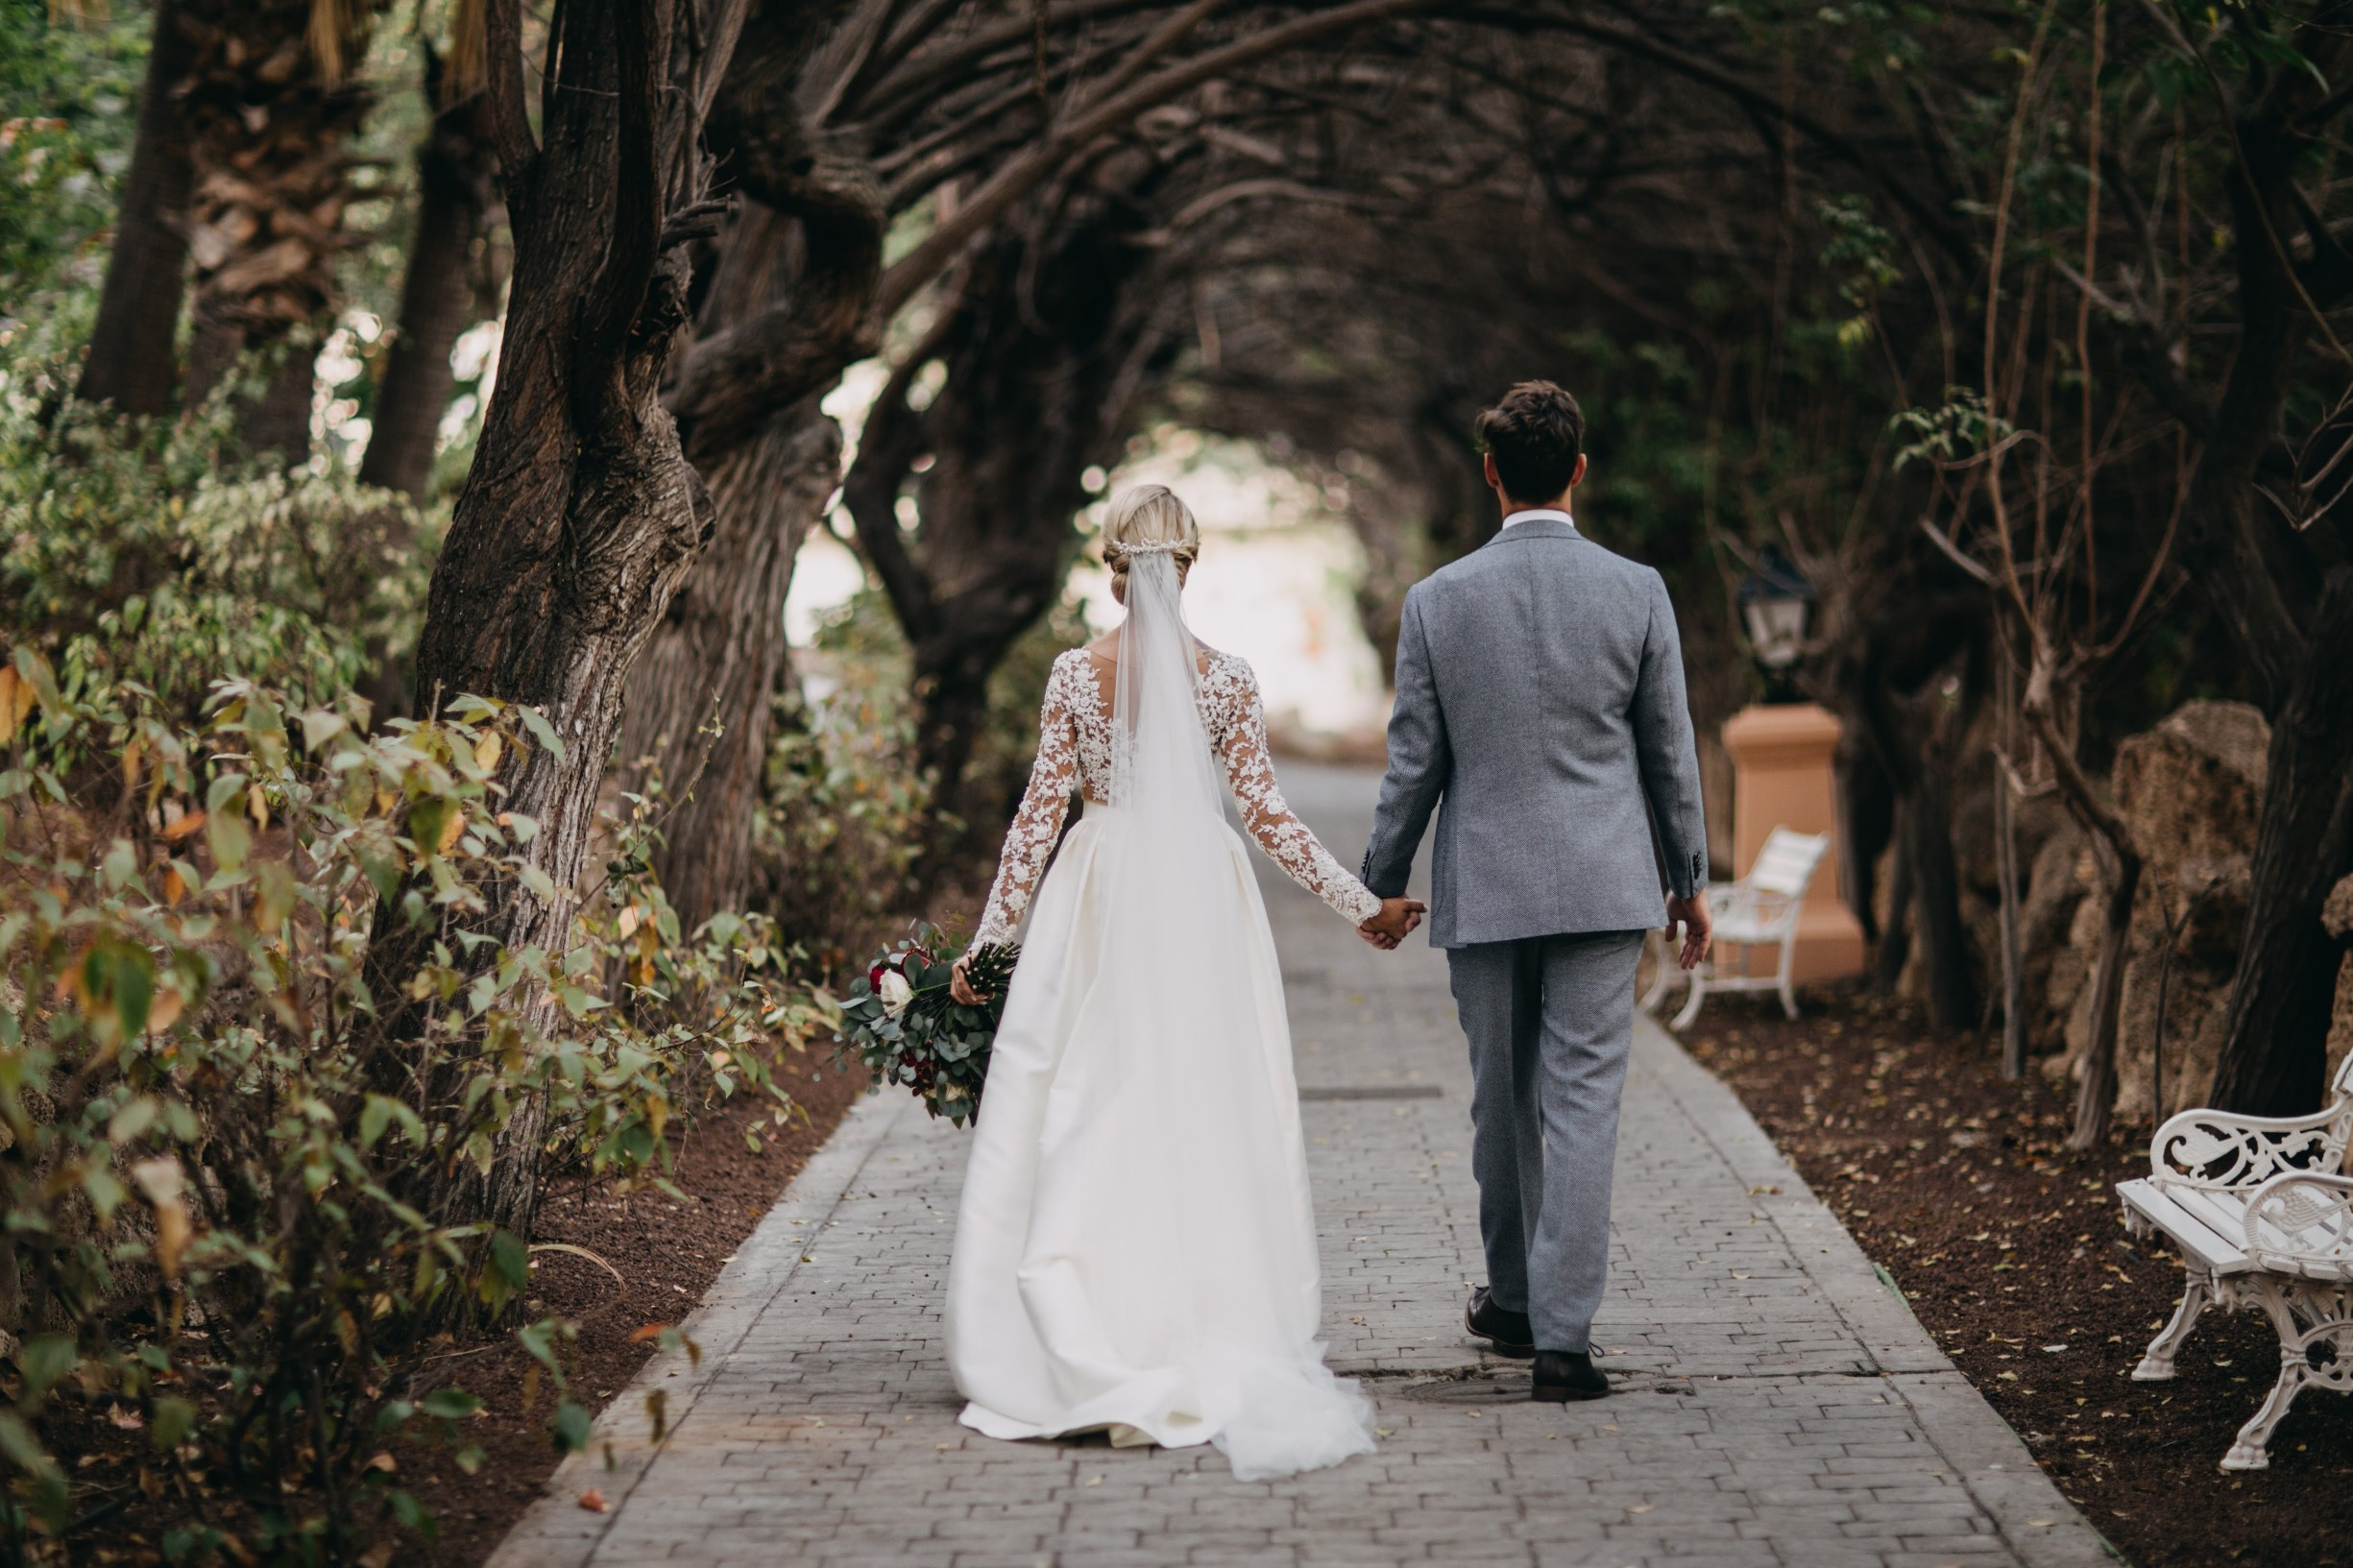 Walking path to the ceremony